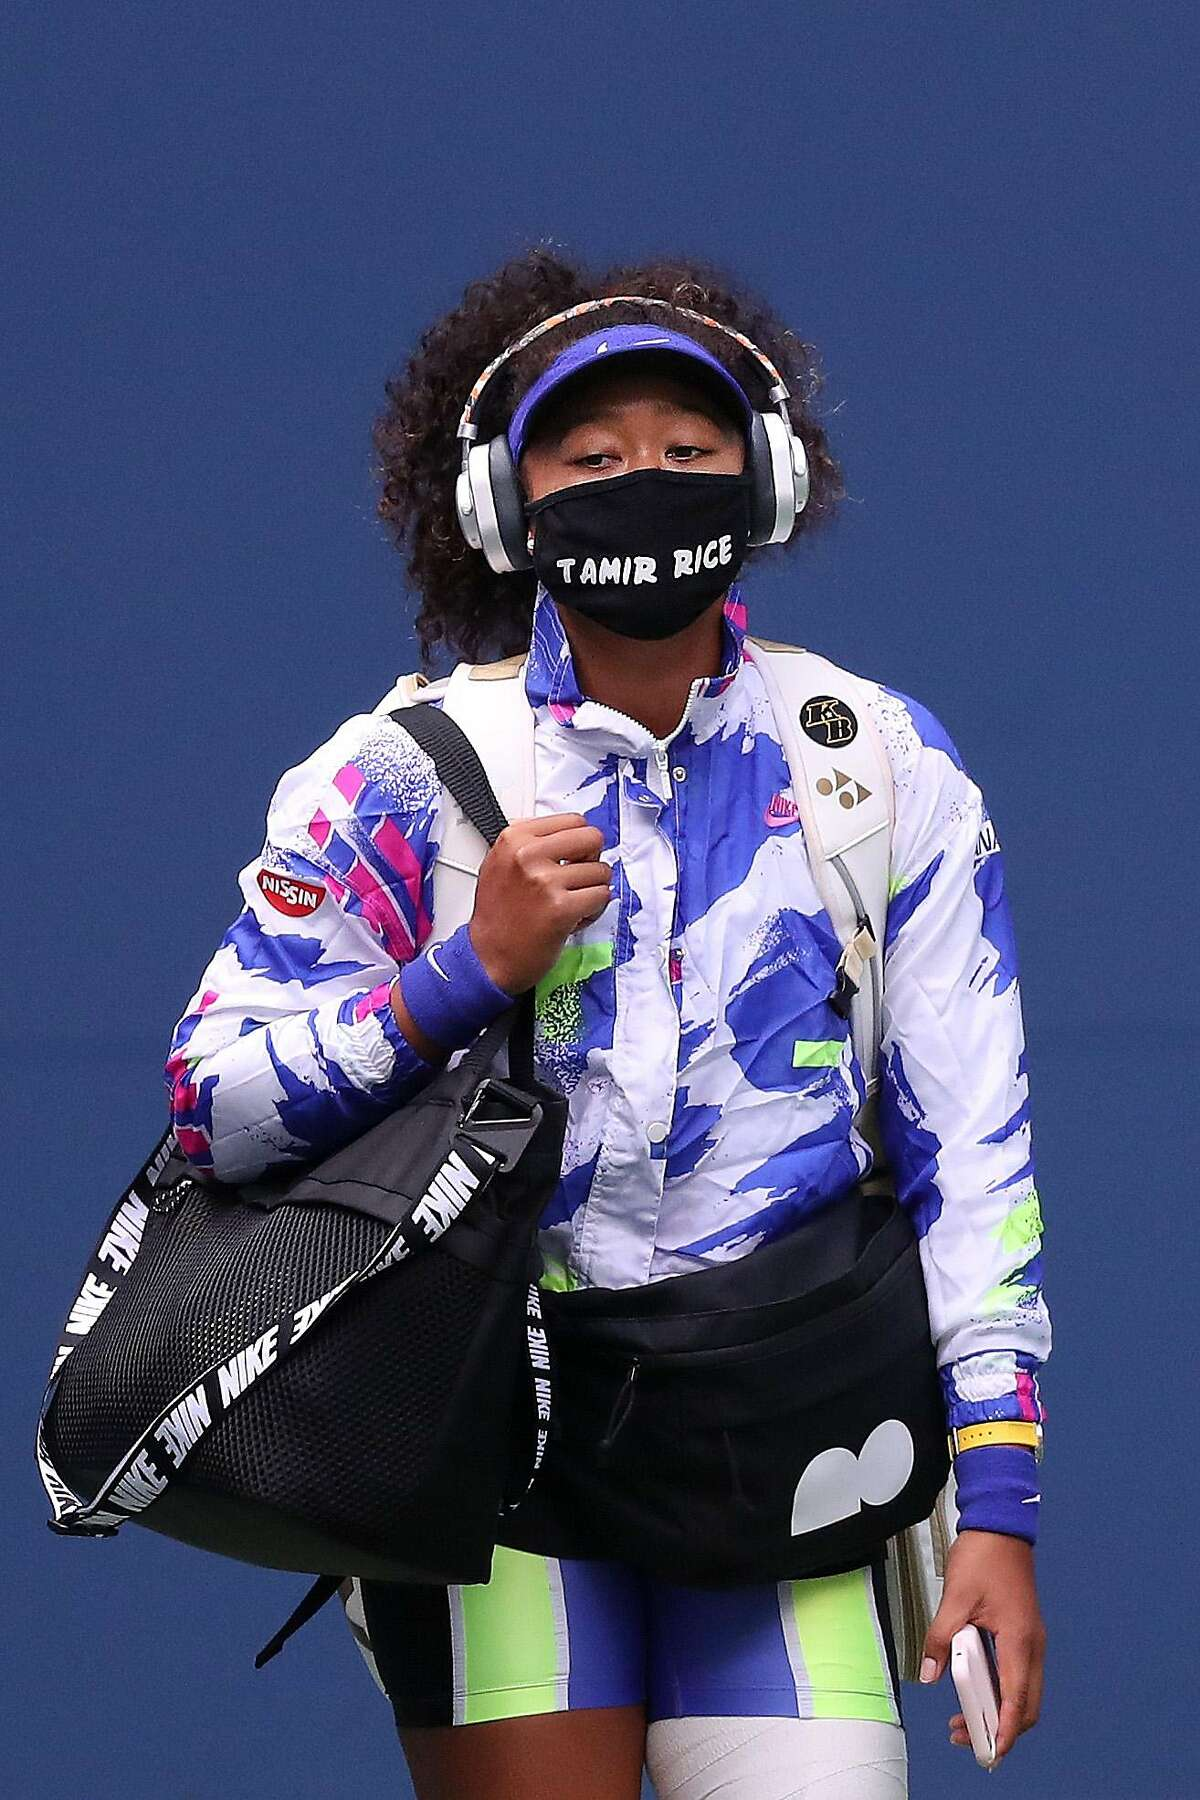 Naomi Osaka wore the names of Tamir Rice and six other victims of violence during the U.S. Open.